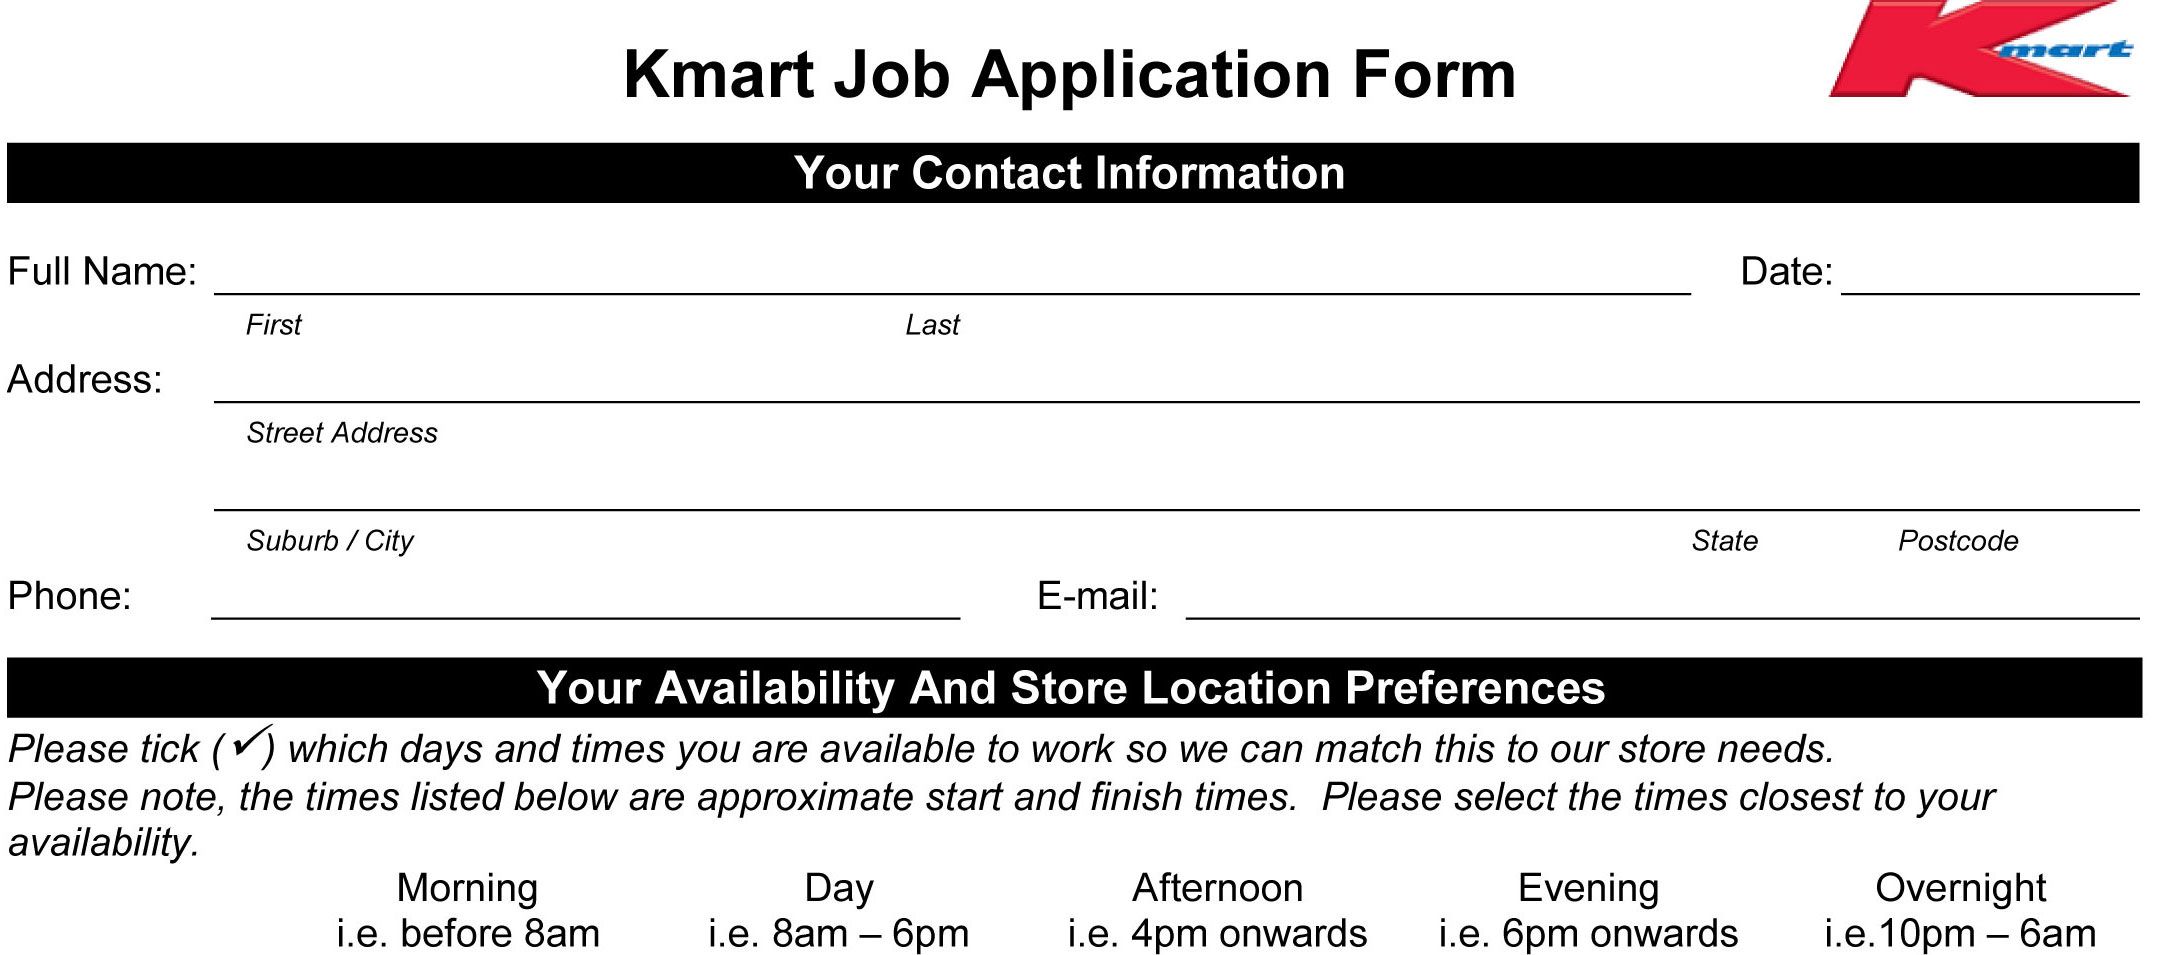 Kmart Job Application - Printable Employment PDF Forms